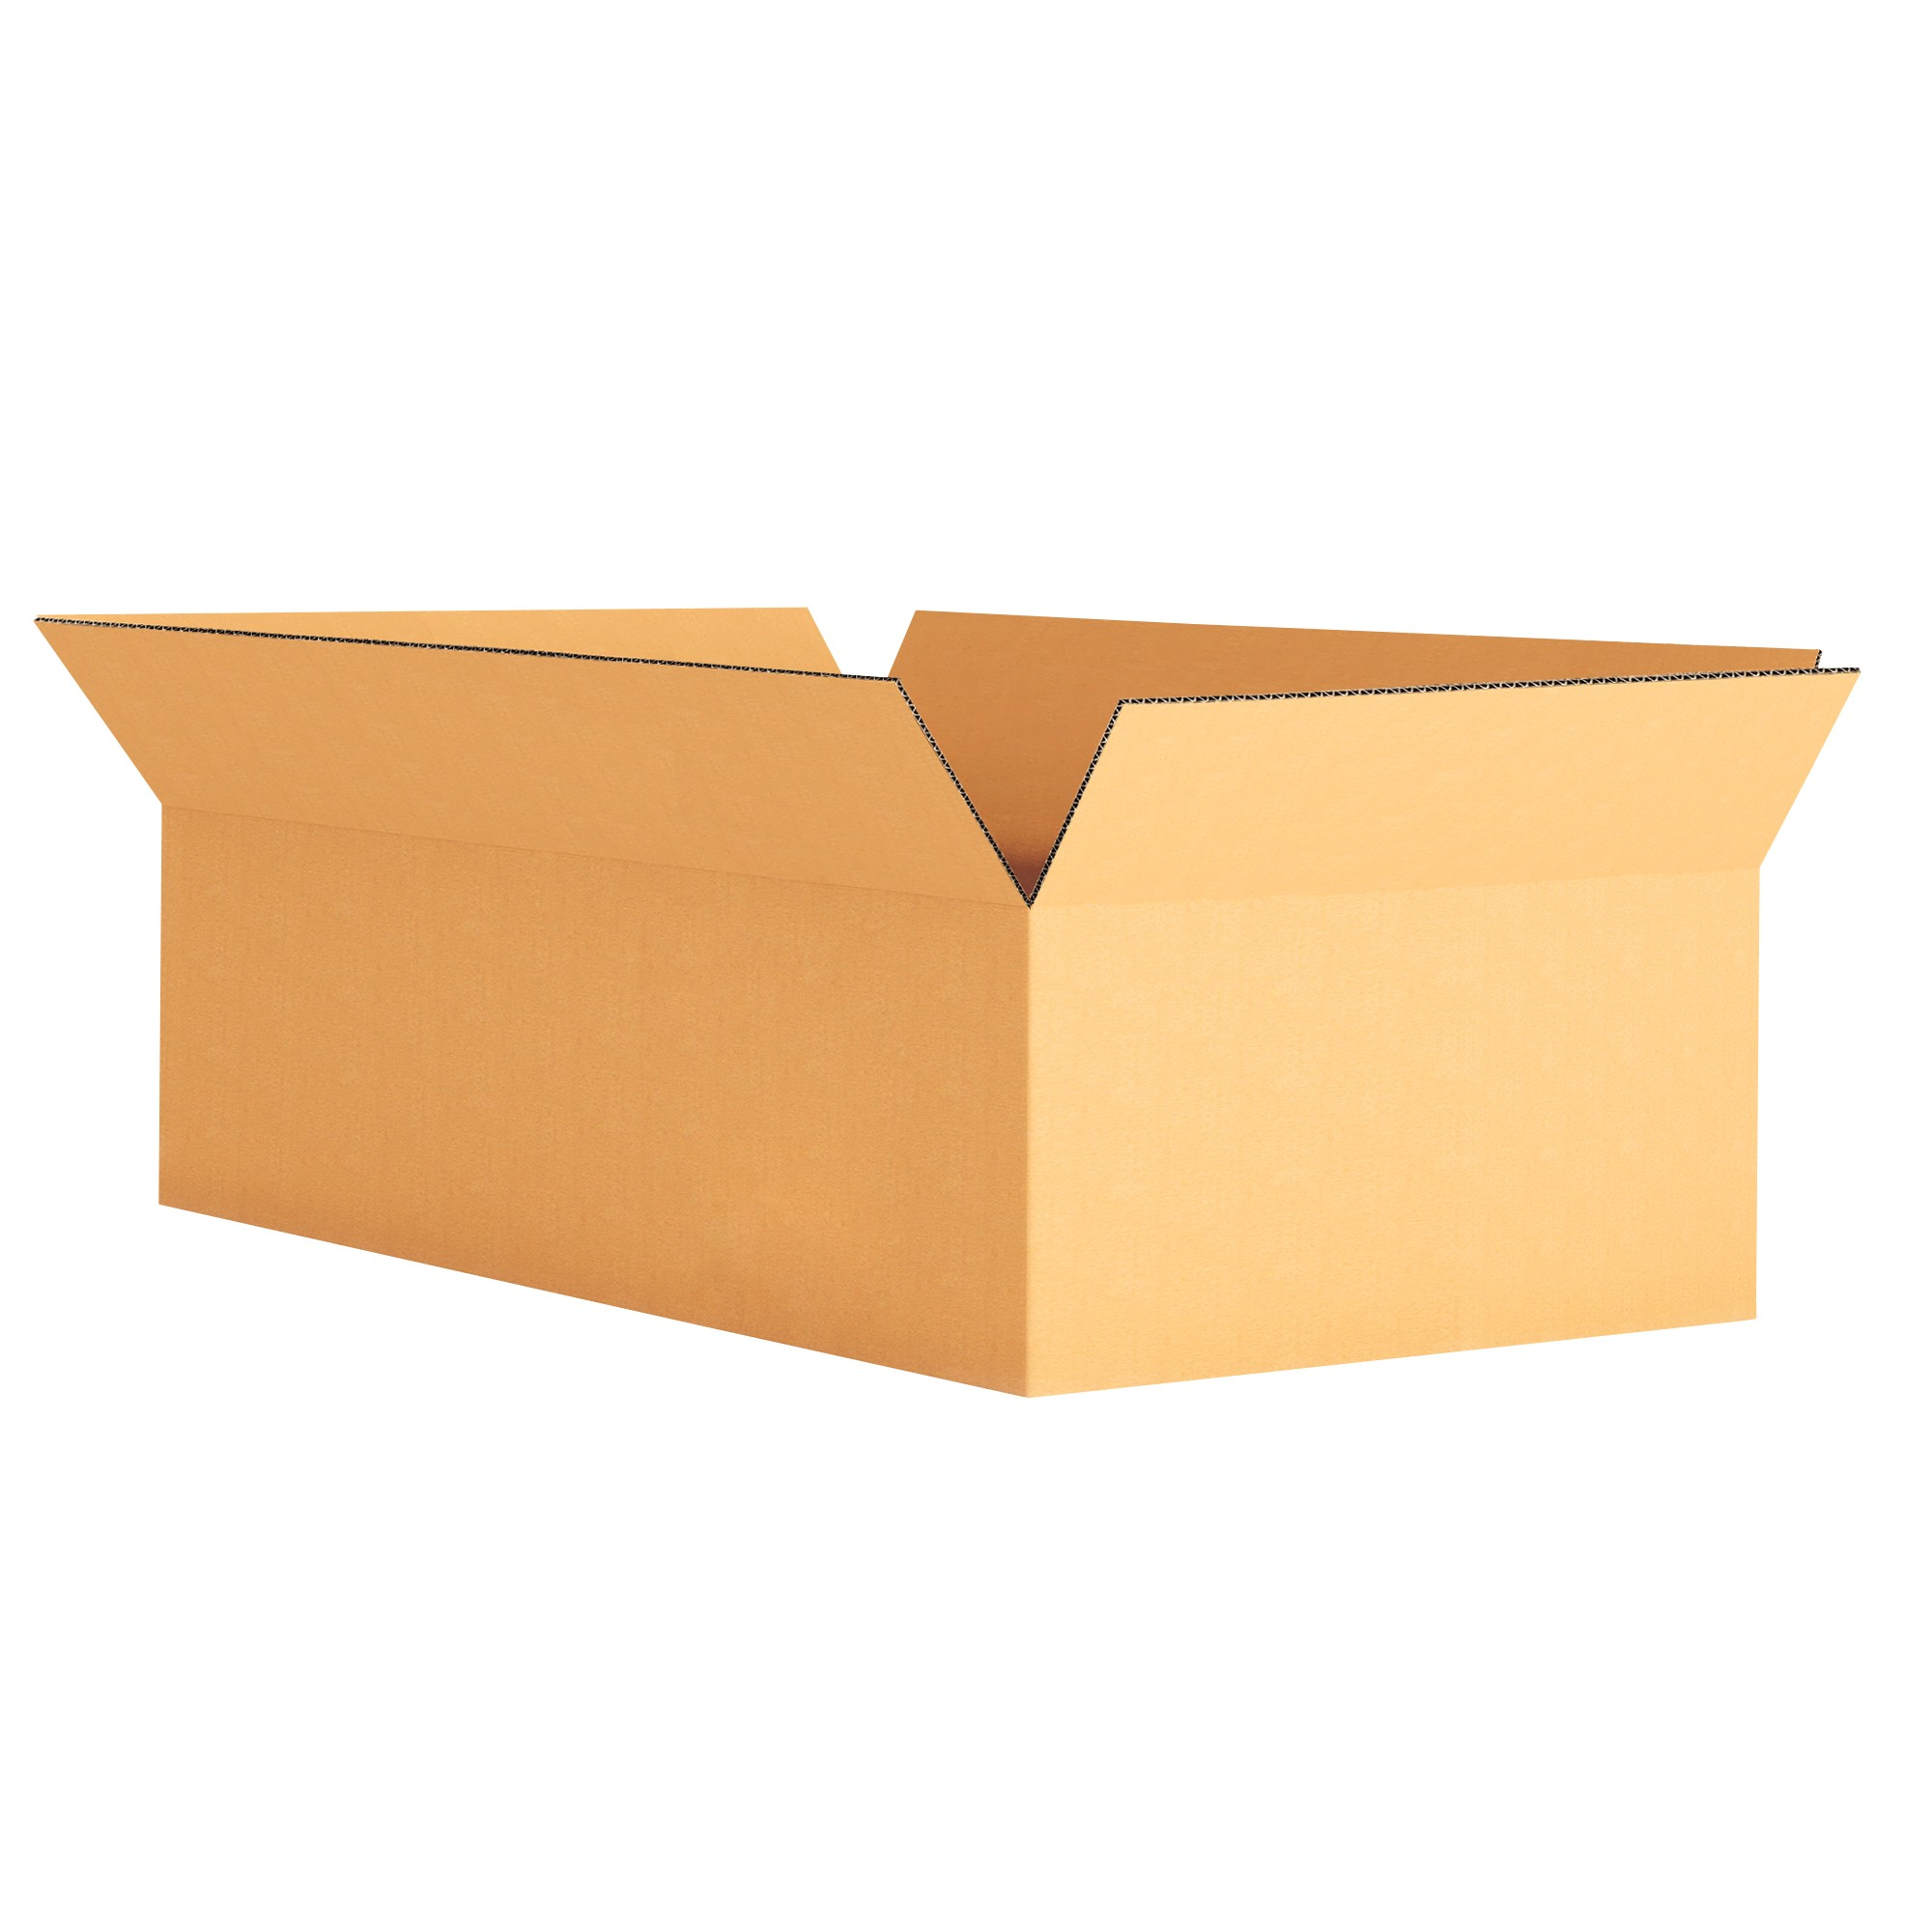 "TOTALPACK® 12 x 6 x 6"" Single Wall Corrugated Boxes 25 Units"